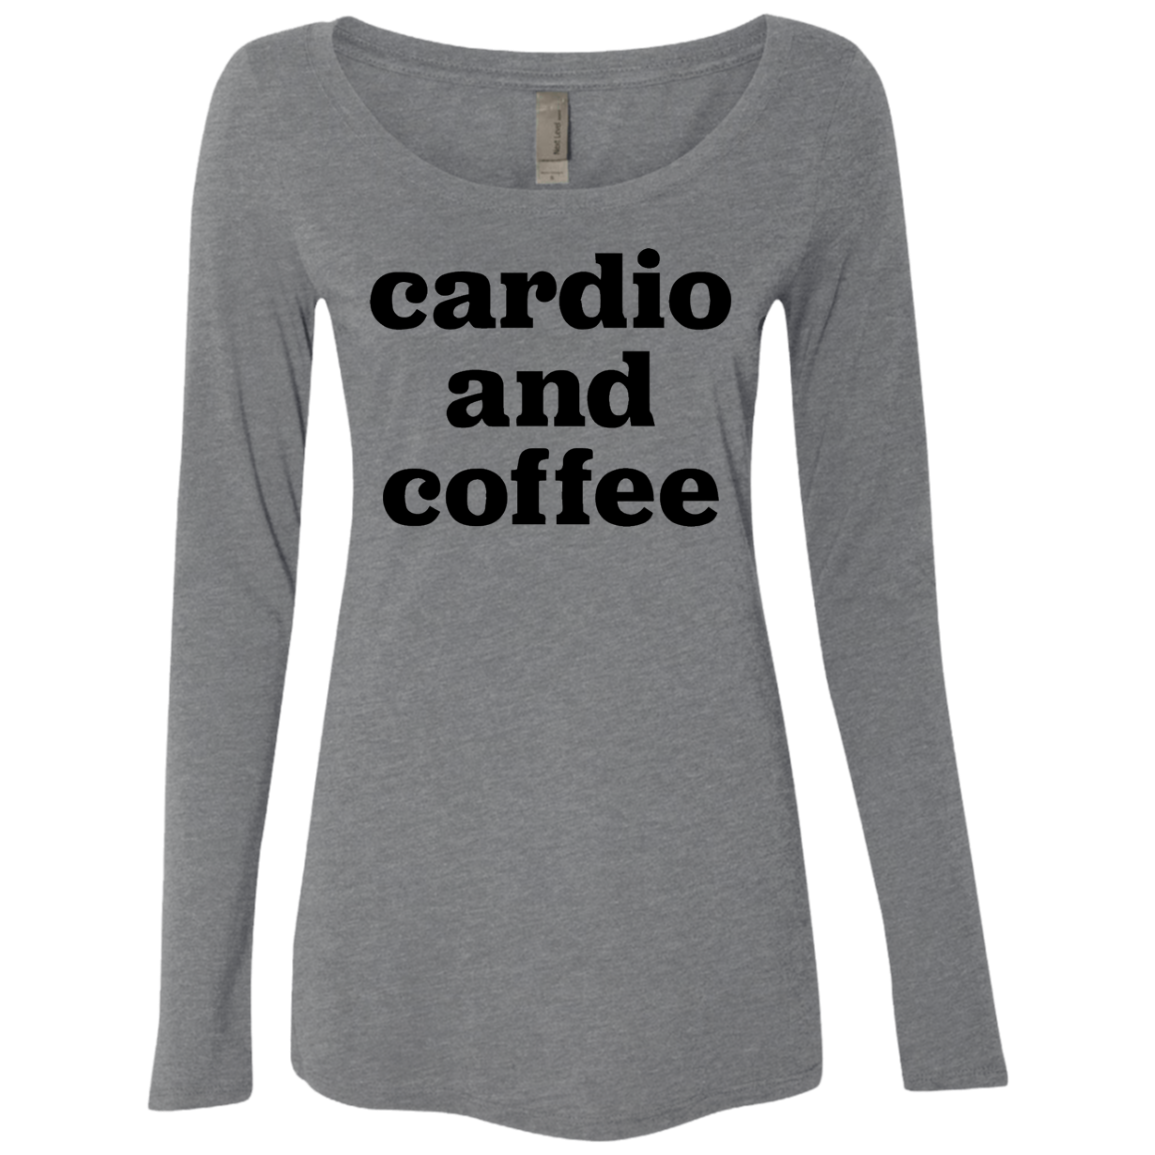 Cardio and Coffee Women's Long Sleeve Tee - Trendy Tees